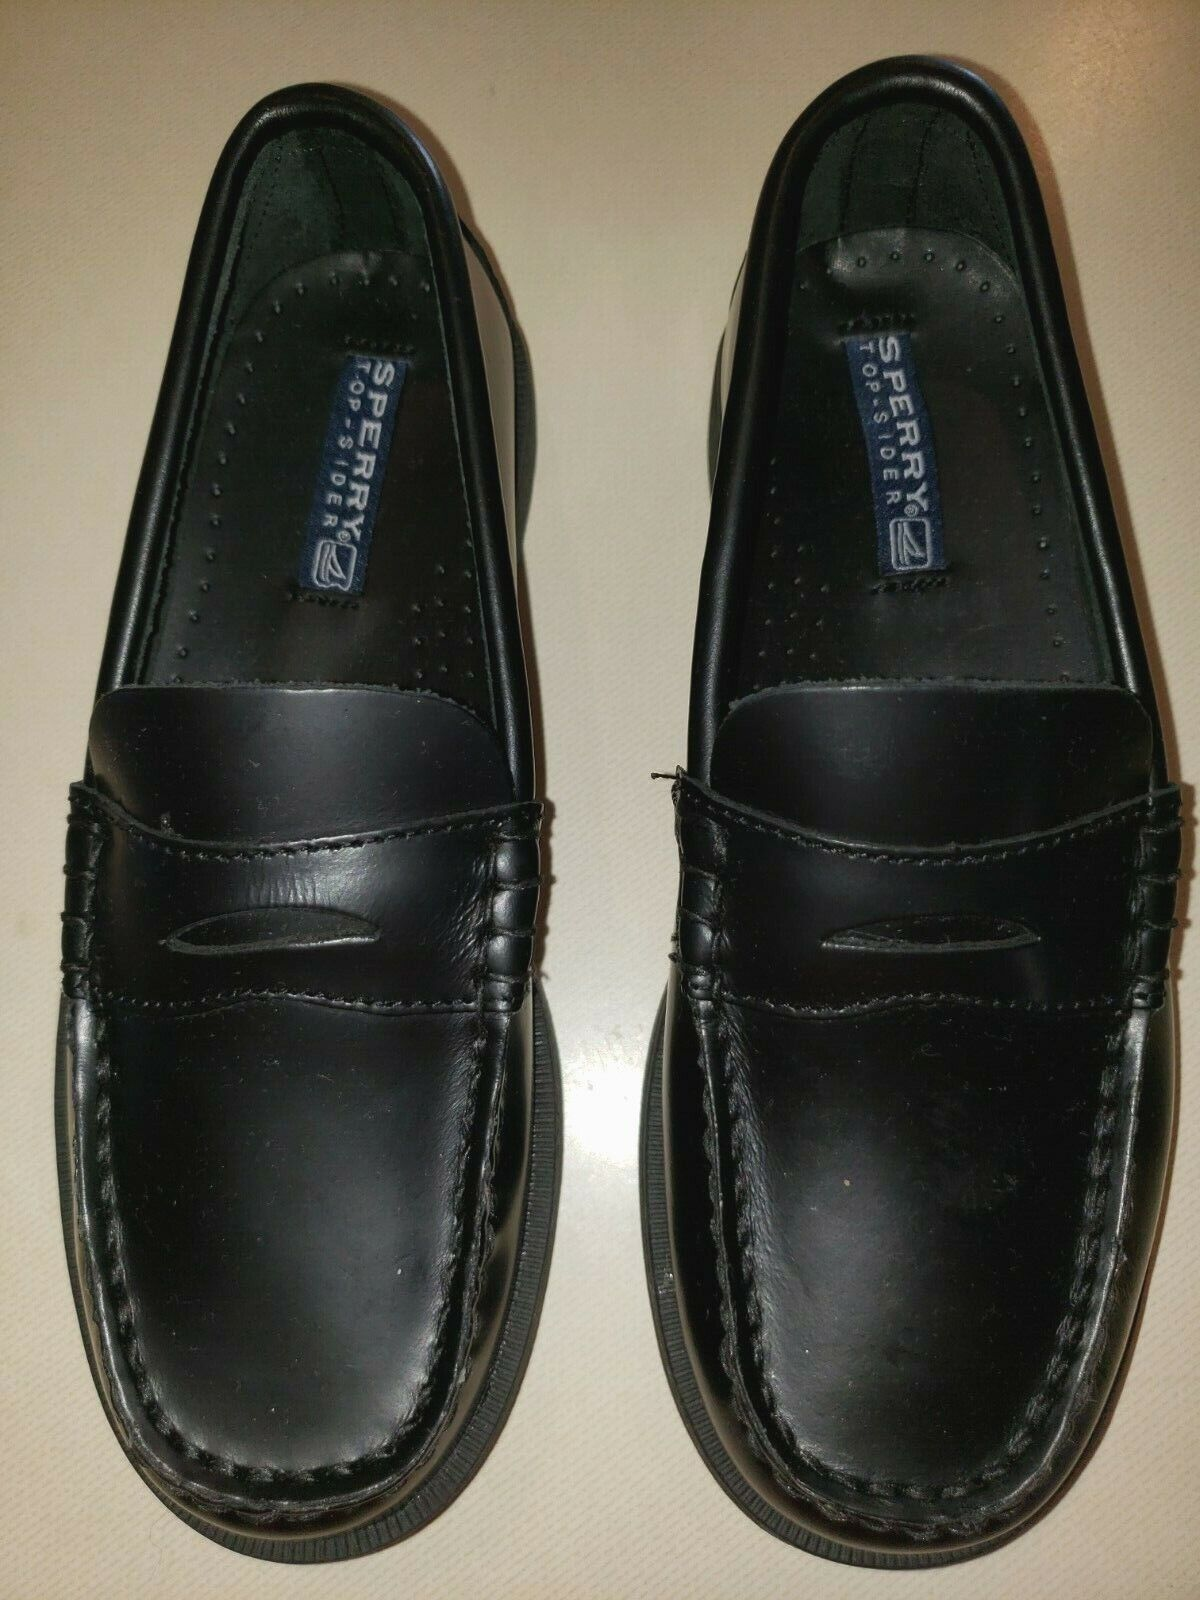 SPERRY boys NEW black PENNY LOAFERS SHOES size 1.5 1 1/2 CHU